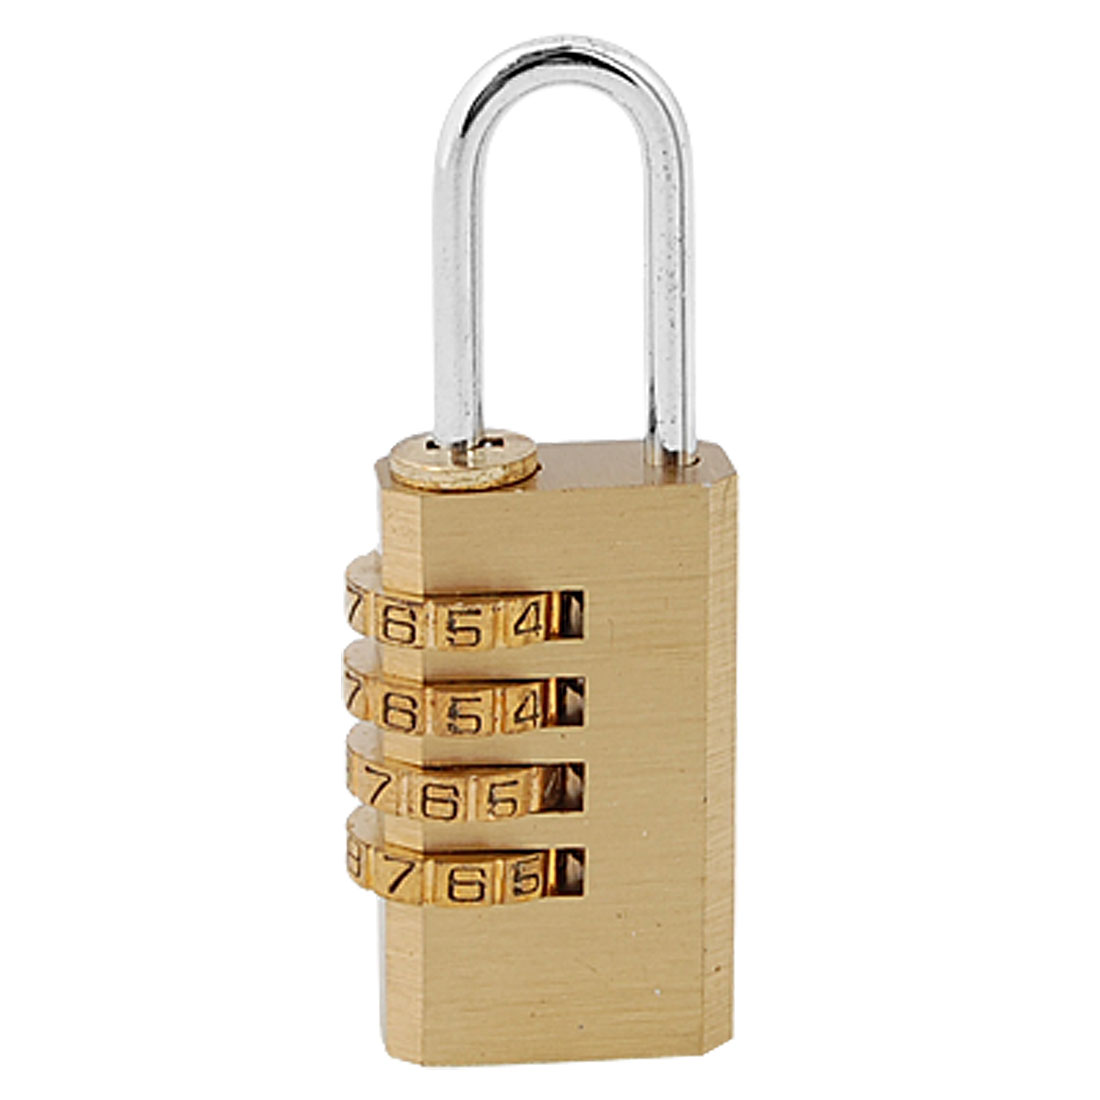 4 Digit Bag Travel Lock Resettable Combination Padlock